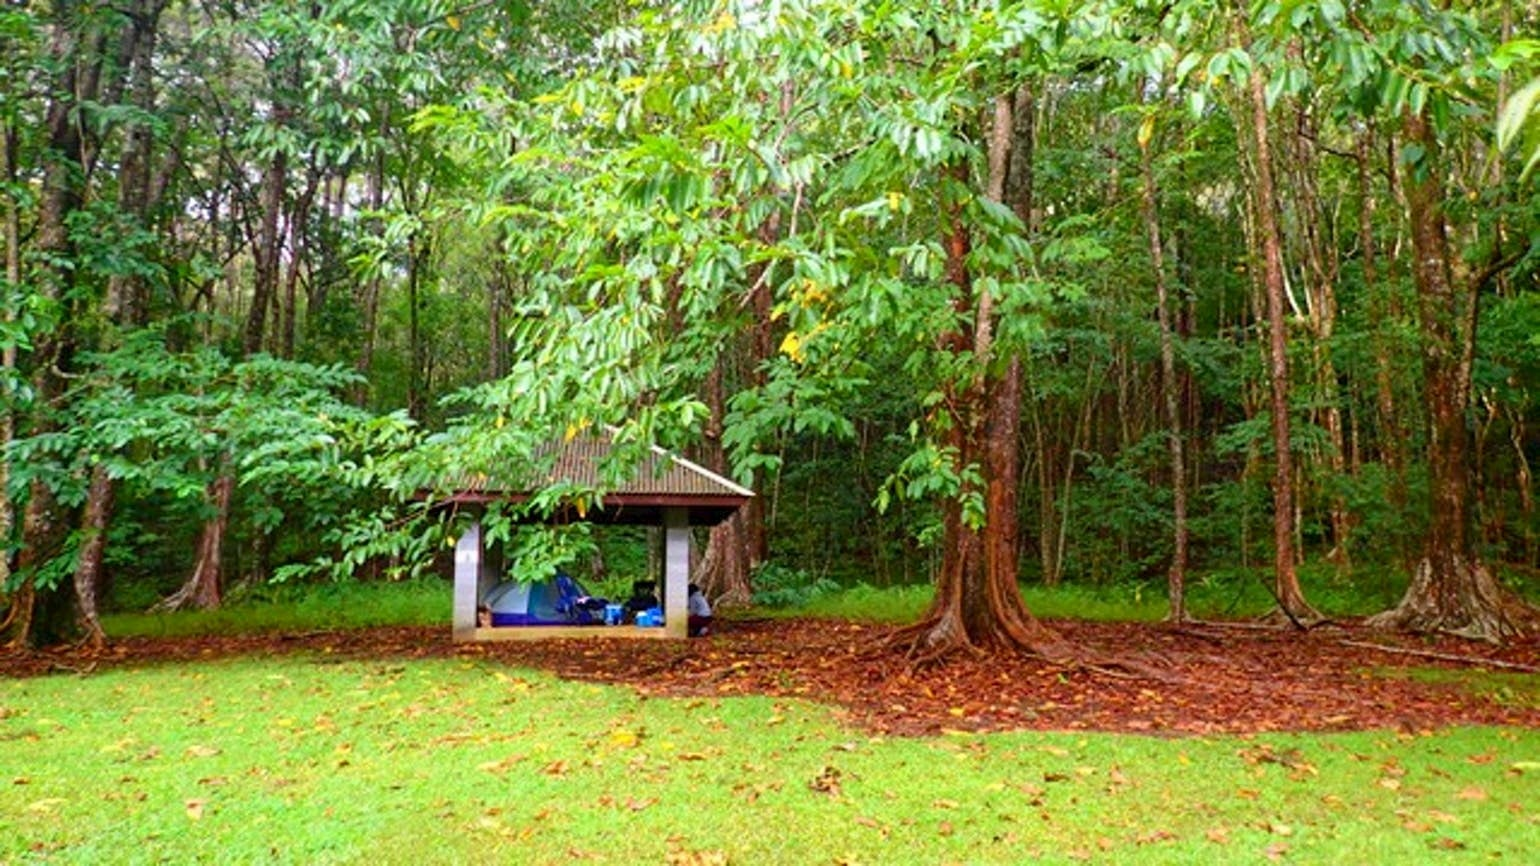 Tent under shelter in lush forested area.